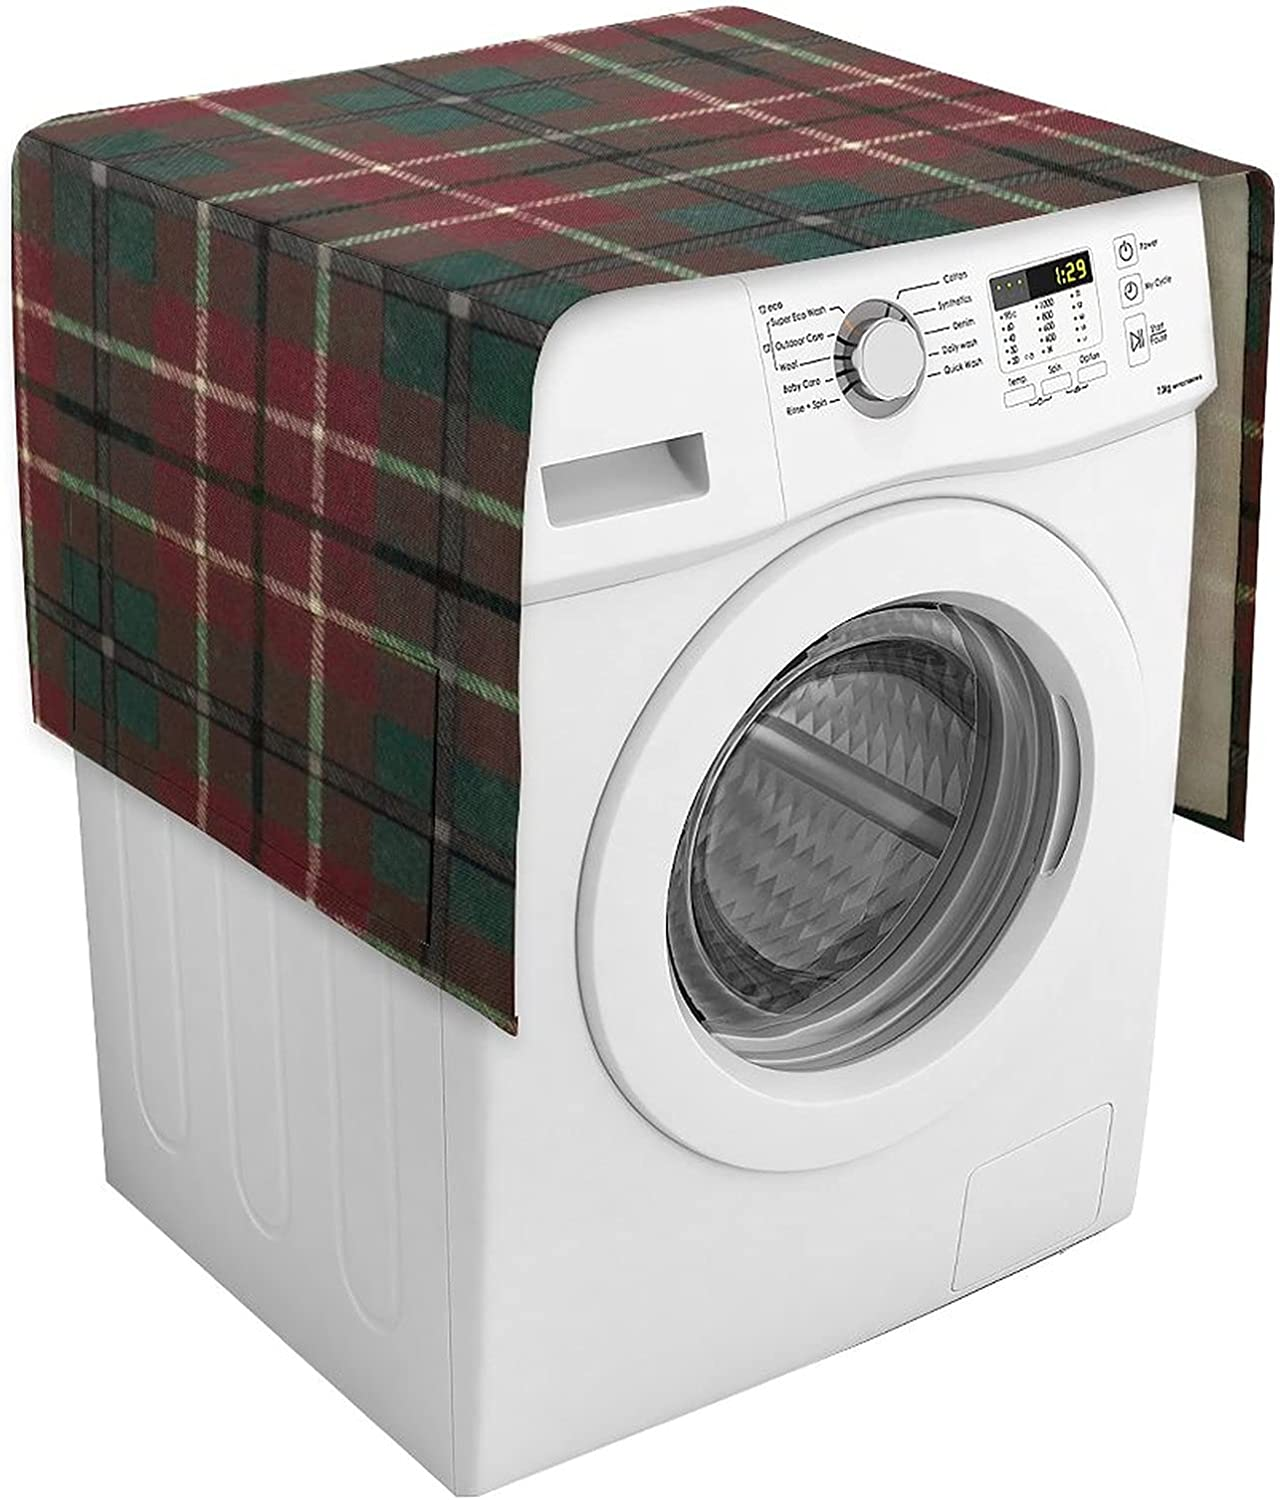 Multi-Purpose lowest price Washing Machine Covers Protector Washer Appliance Max 66% OFF